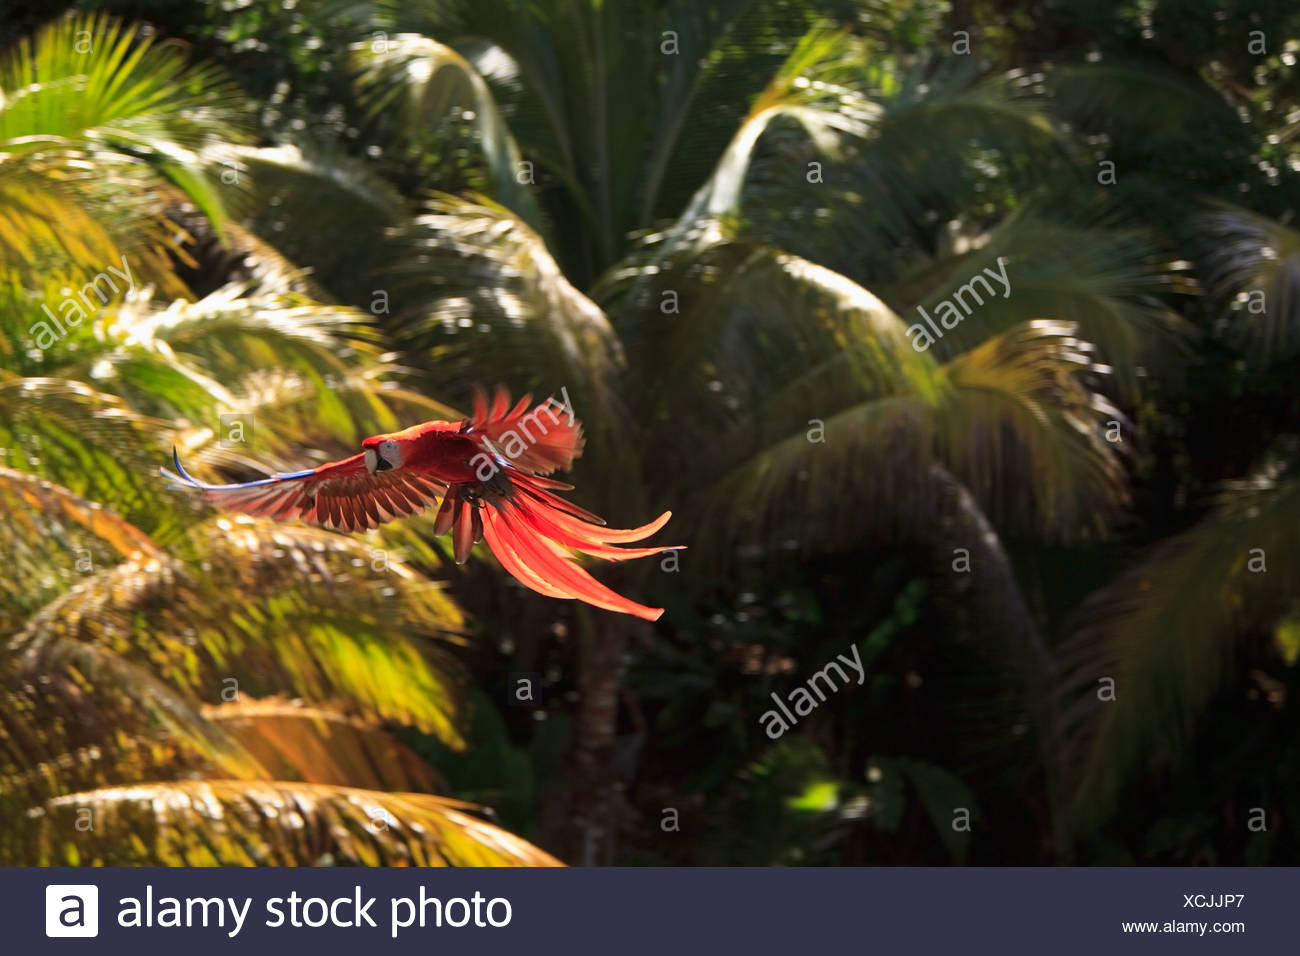 Roatan, Bay Islands, Honduras; Scarlet Macaws (Ara Macao) In Flight In The Forest Preserve - Stock Image